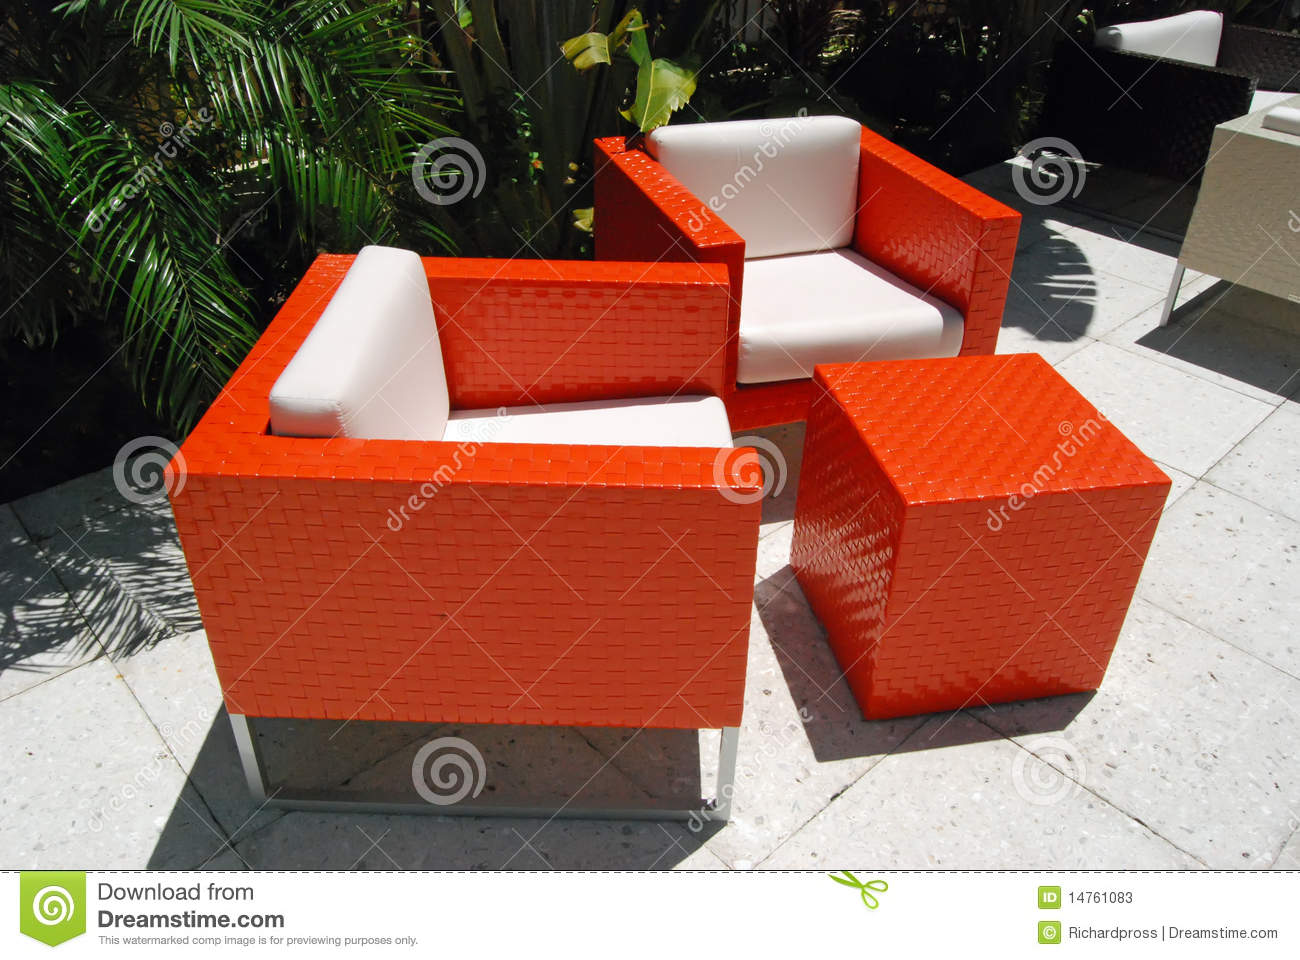 bright orange patio chairs stock image. image of outdoors